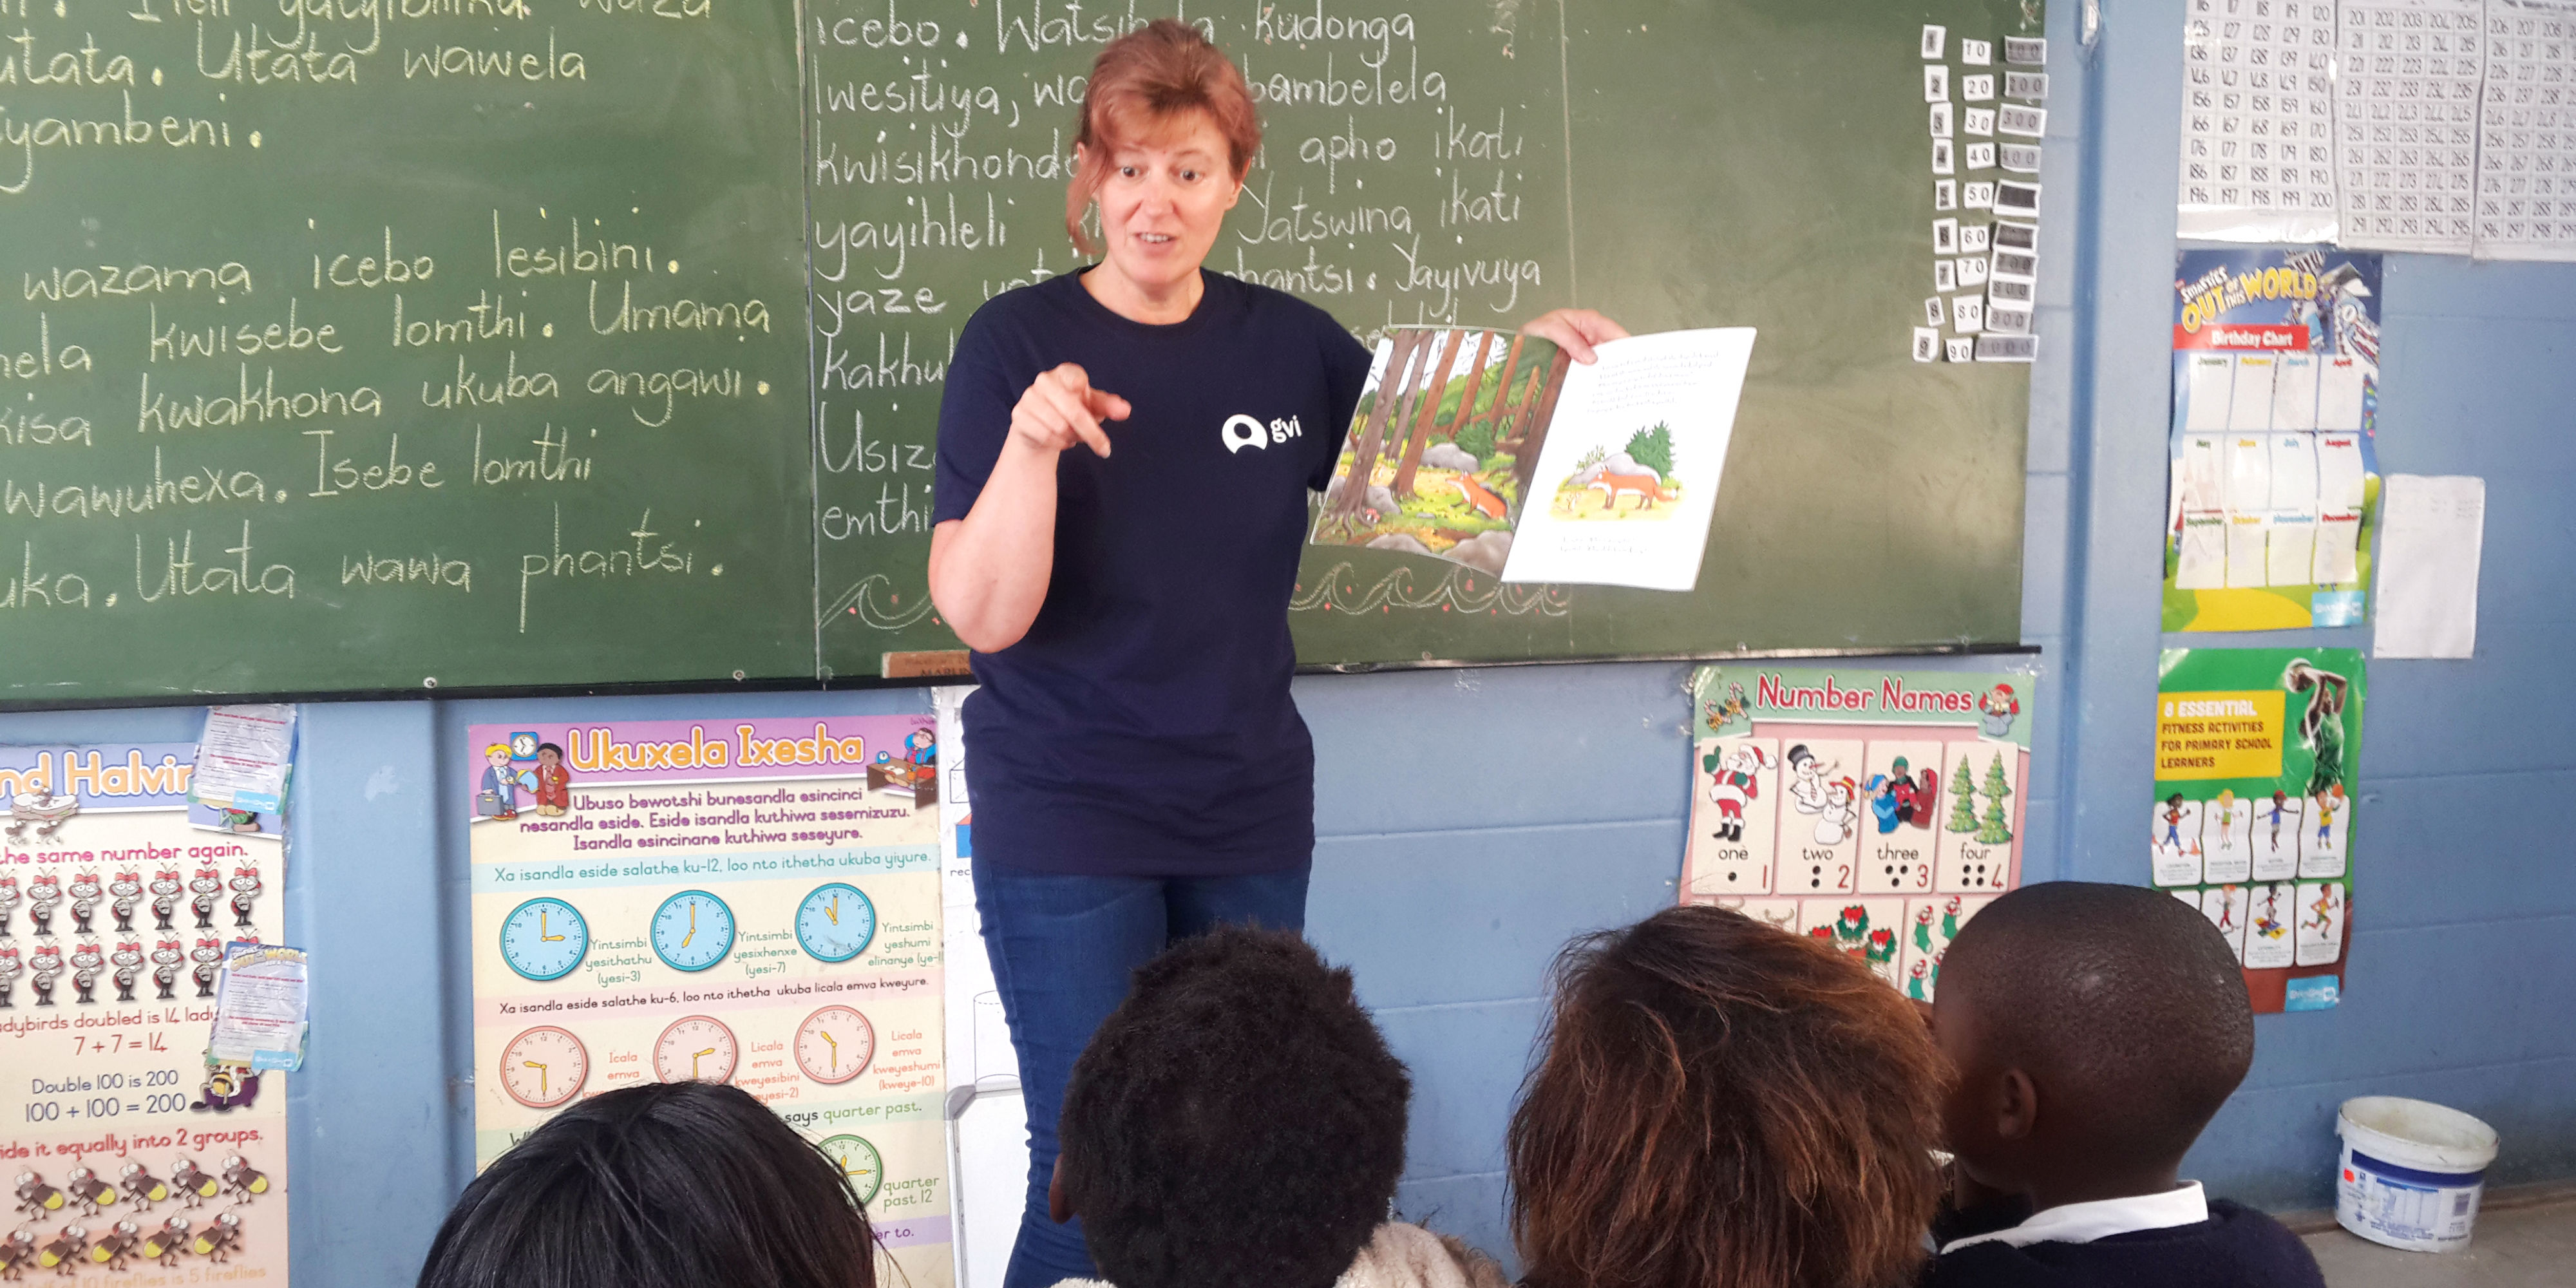 A GVI volunteer in South Africa reads a story to young learners. Education initiatives form an important part of promoting gender equality in education.